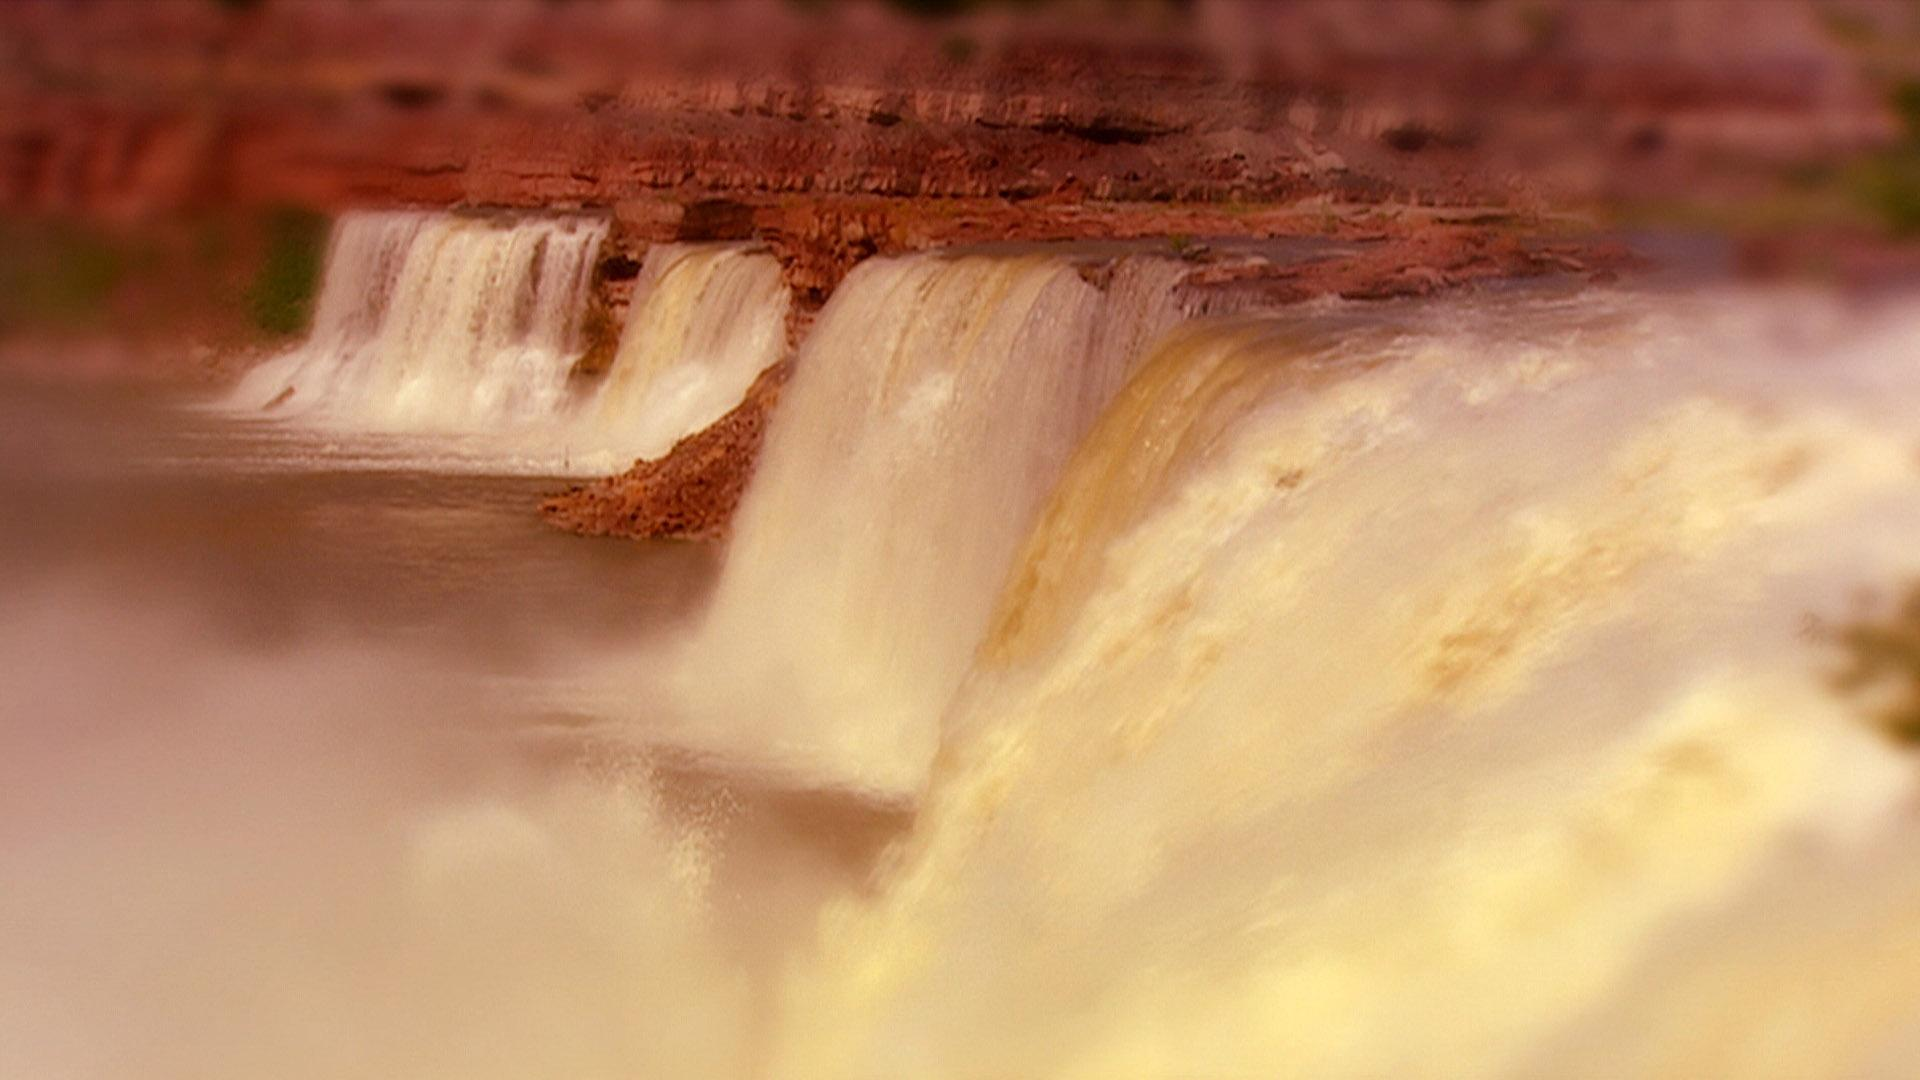 The great falls of the Missouri (Journals of Lewi